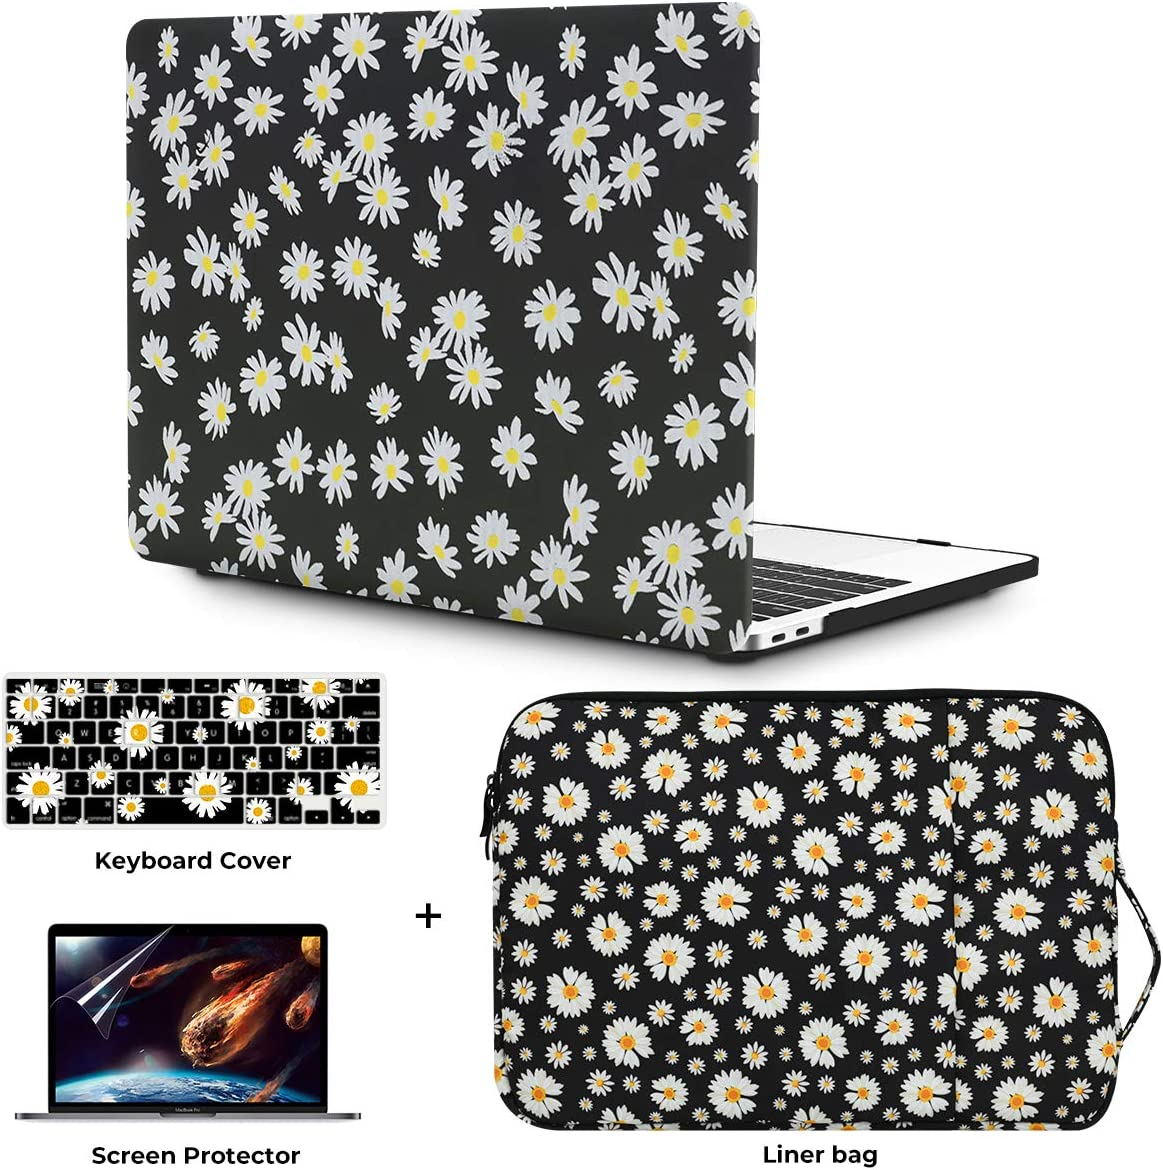 "OneGET Laptop Case for MacBook Air 13"" Retina (2020 Touch ID) w/Keyboard Cover+Flowers Sleeve+Screen Protector Leather Hard Shell Case A2179 4 in 1 Bundle (2020 A2179 Newest Air 13'', CP03)"